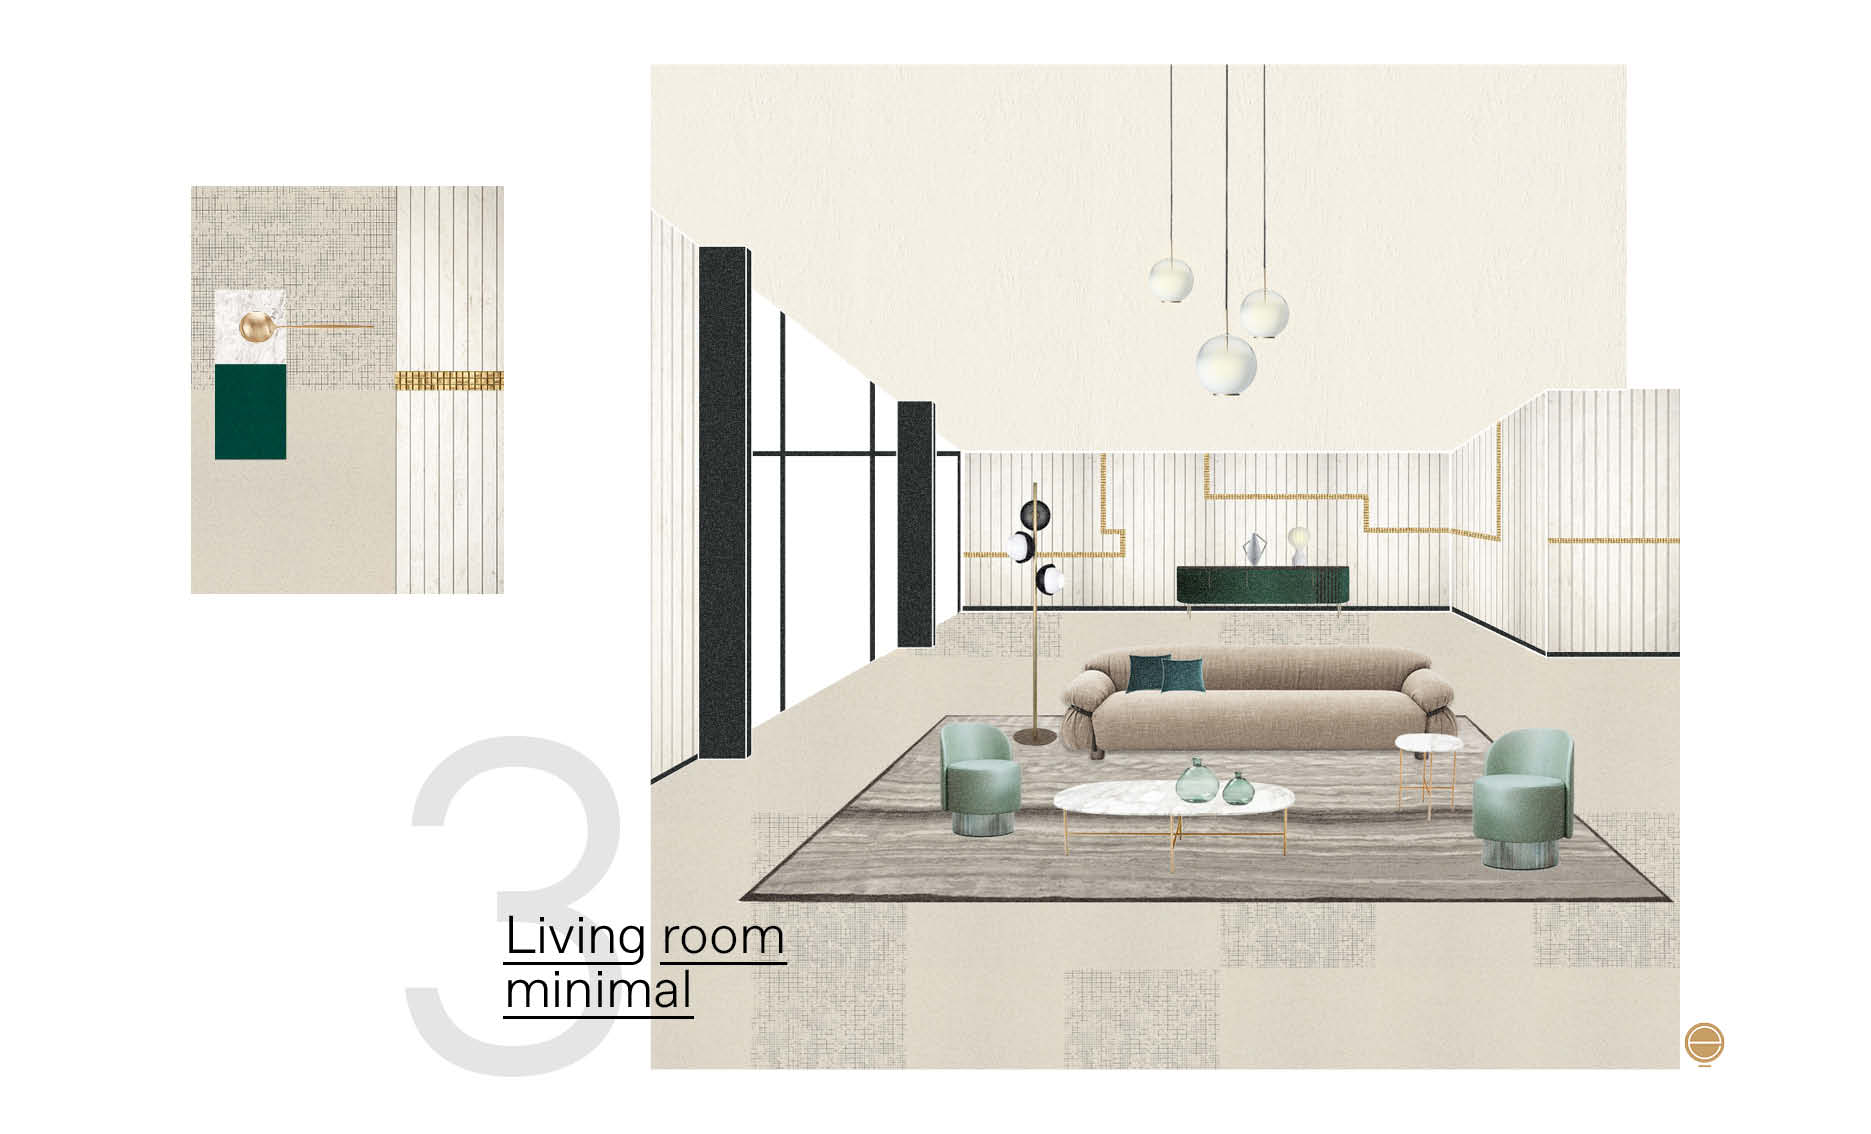 modern Italian living room material moodboard and perspective design high-end solution by Esperiri Milano